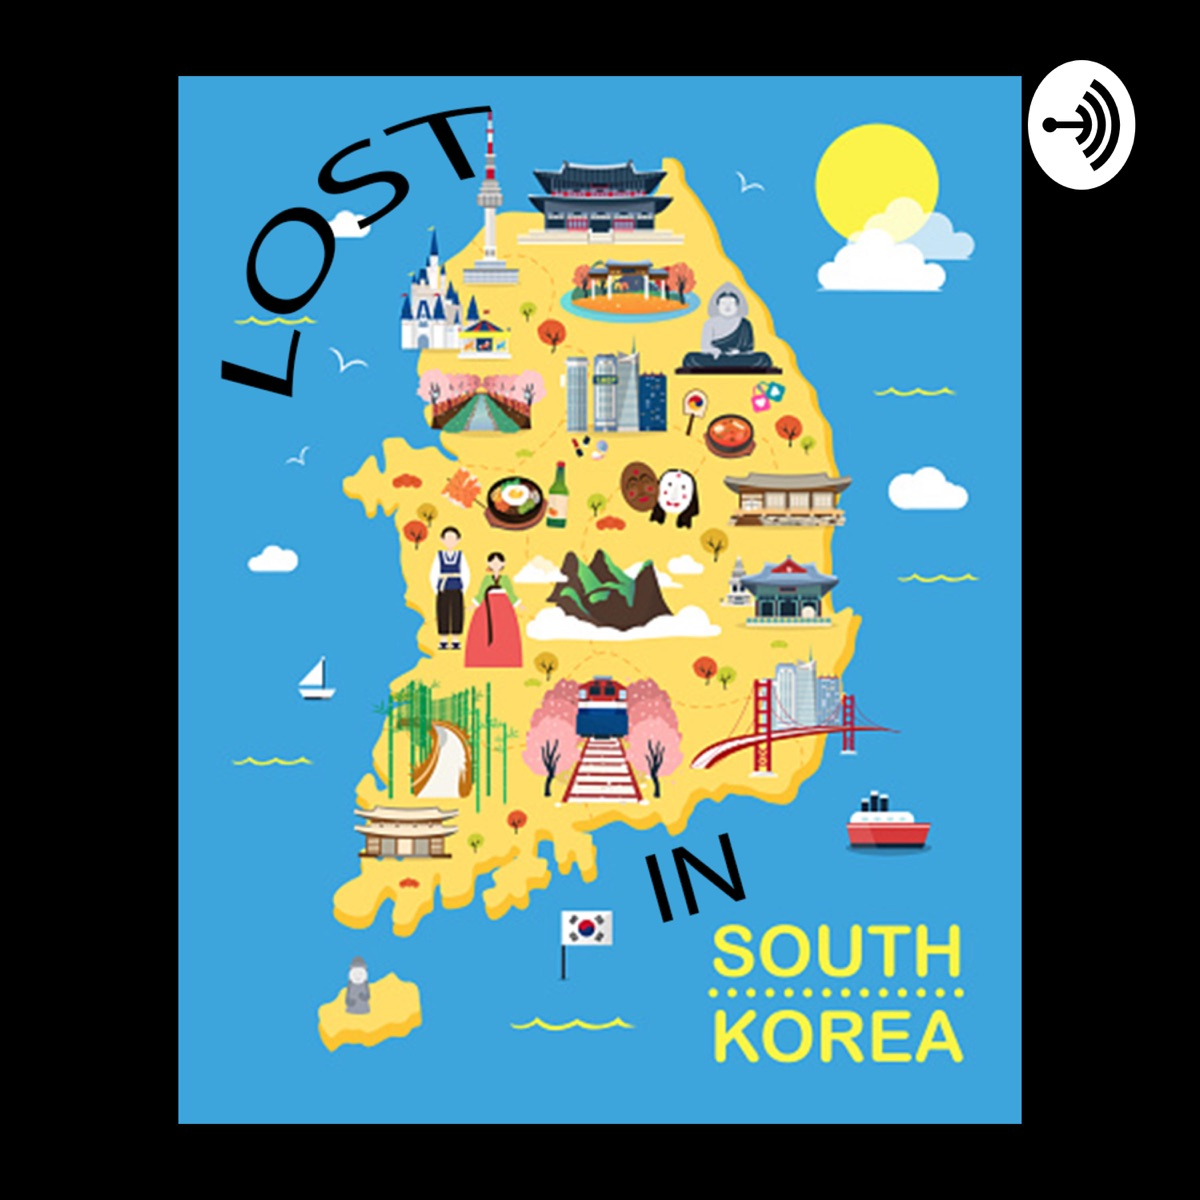 Lost in South Korea